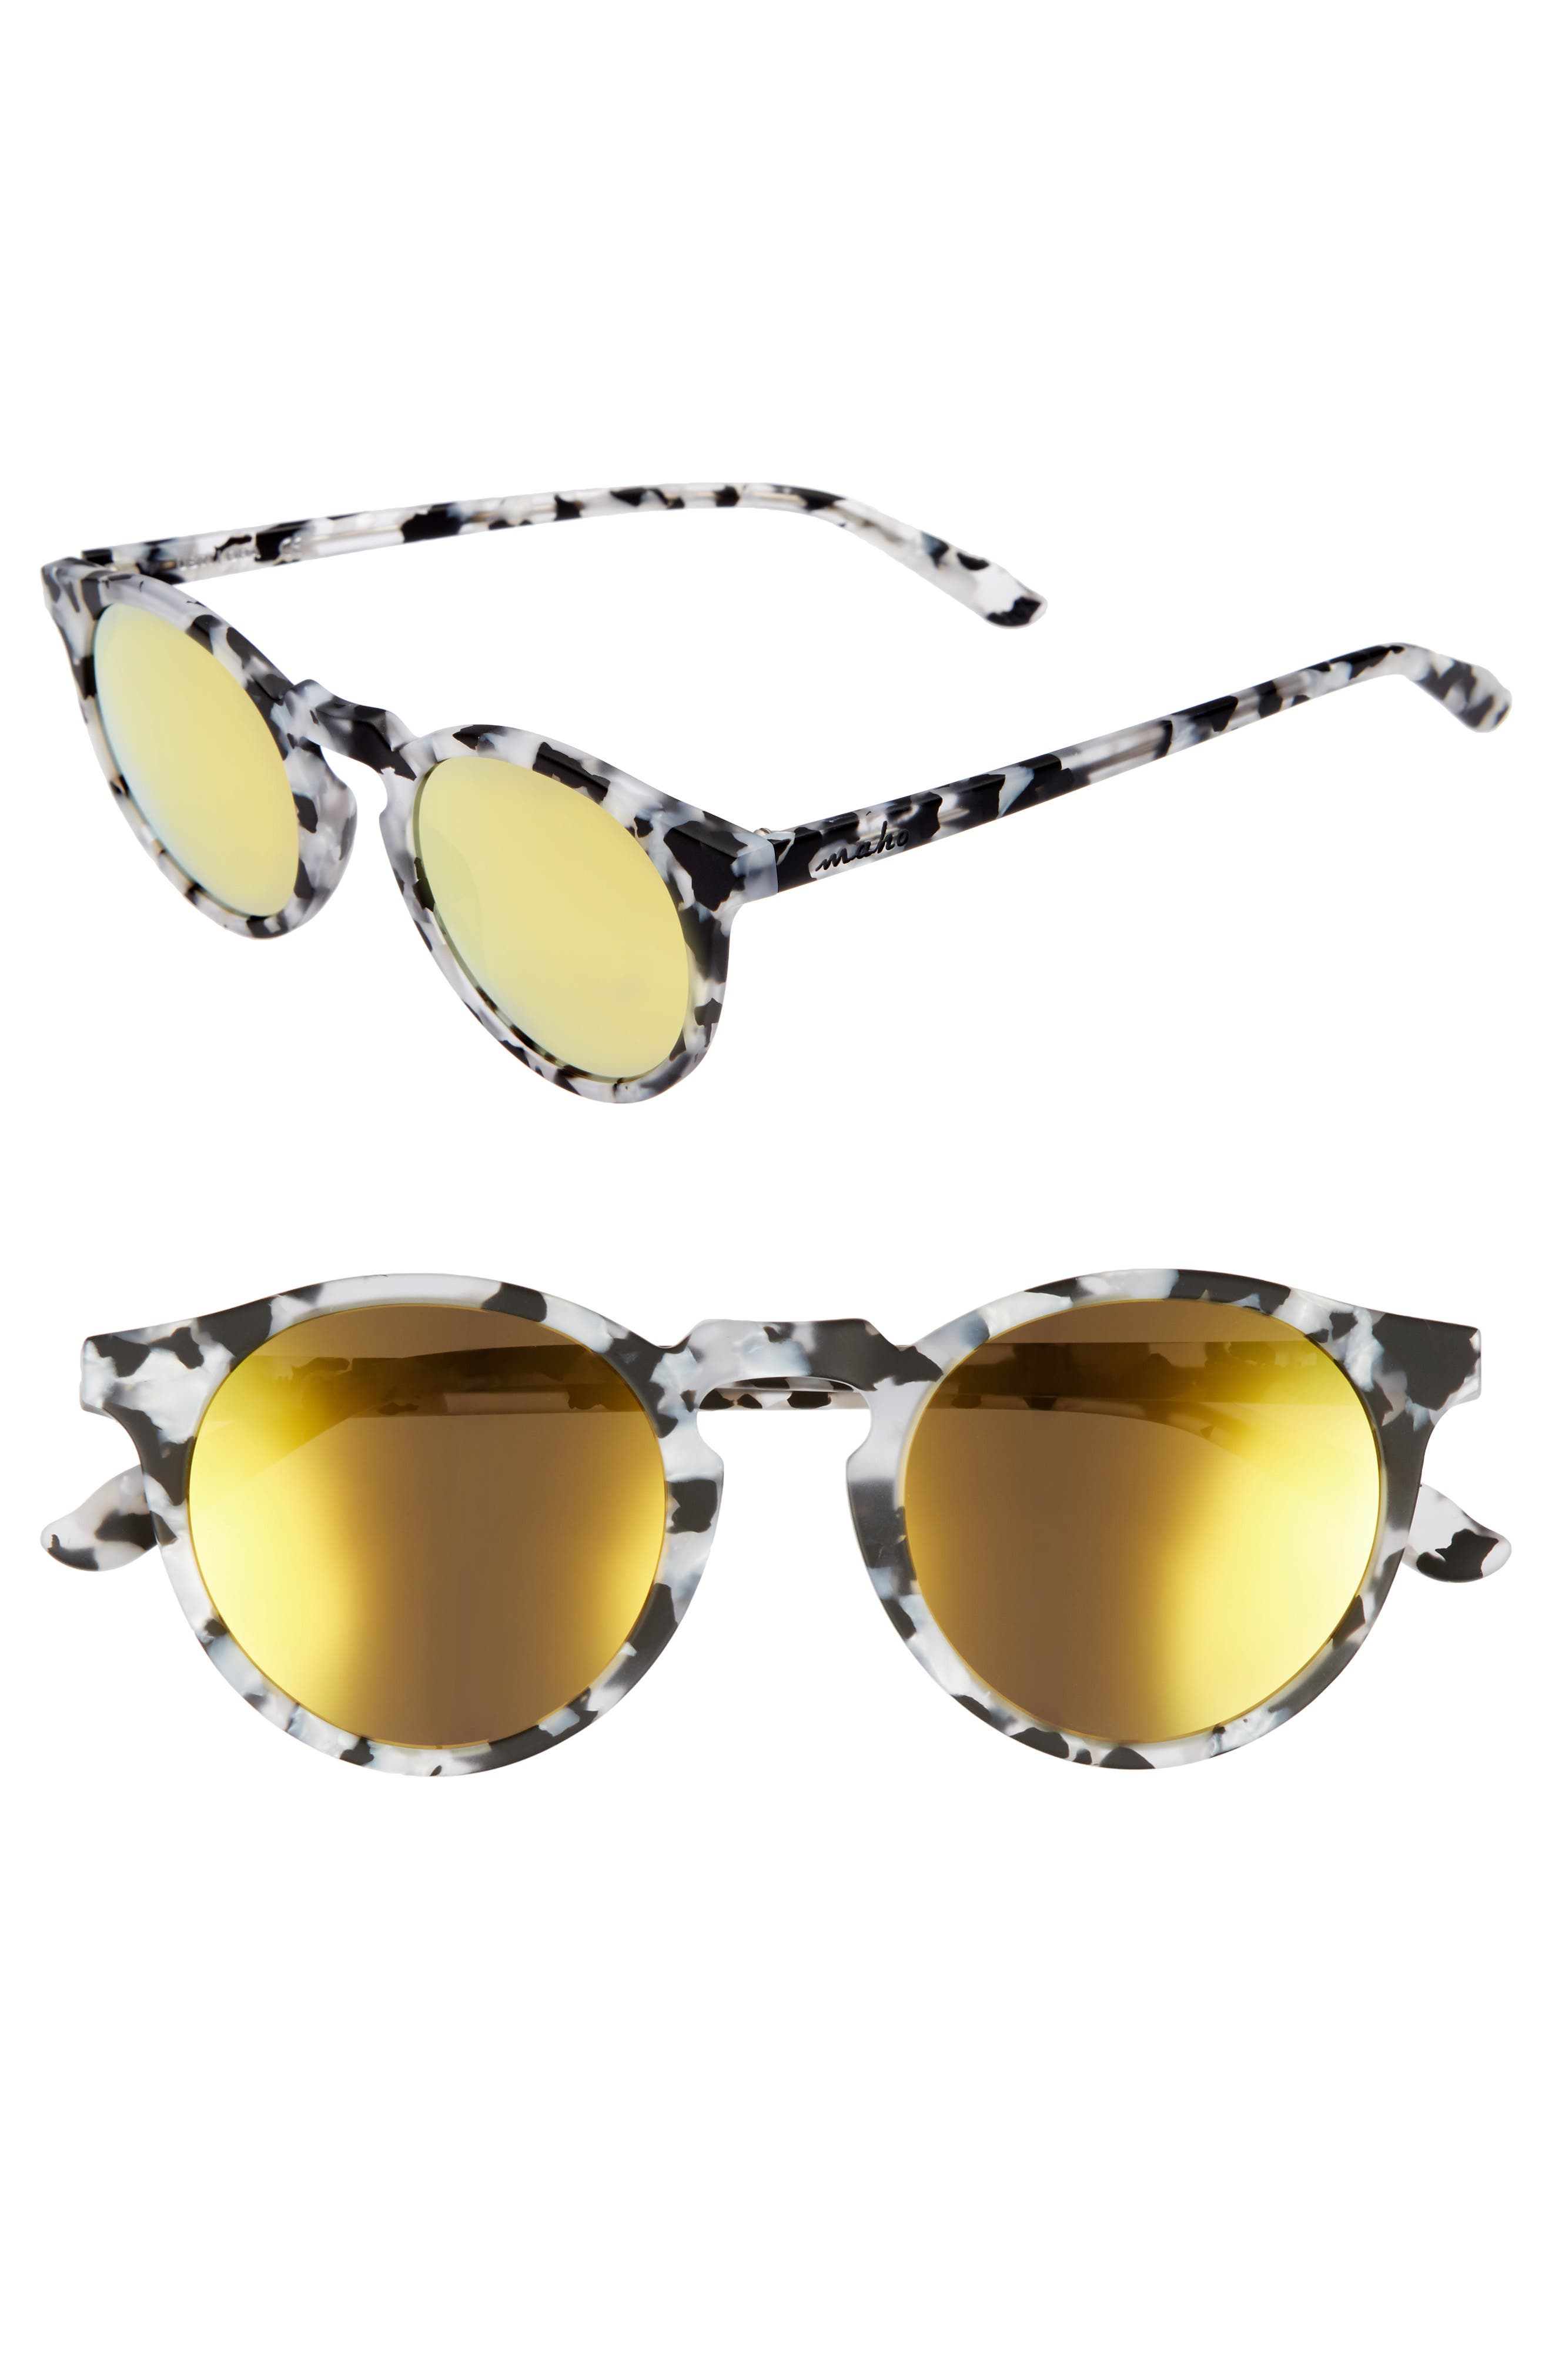 Stockholm 48mm Polarized Round Sunglasses,                             Main thumbnail 1, color,                             Marble